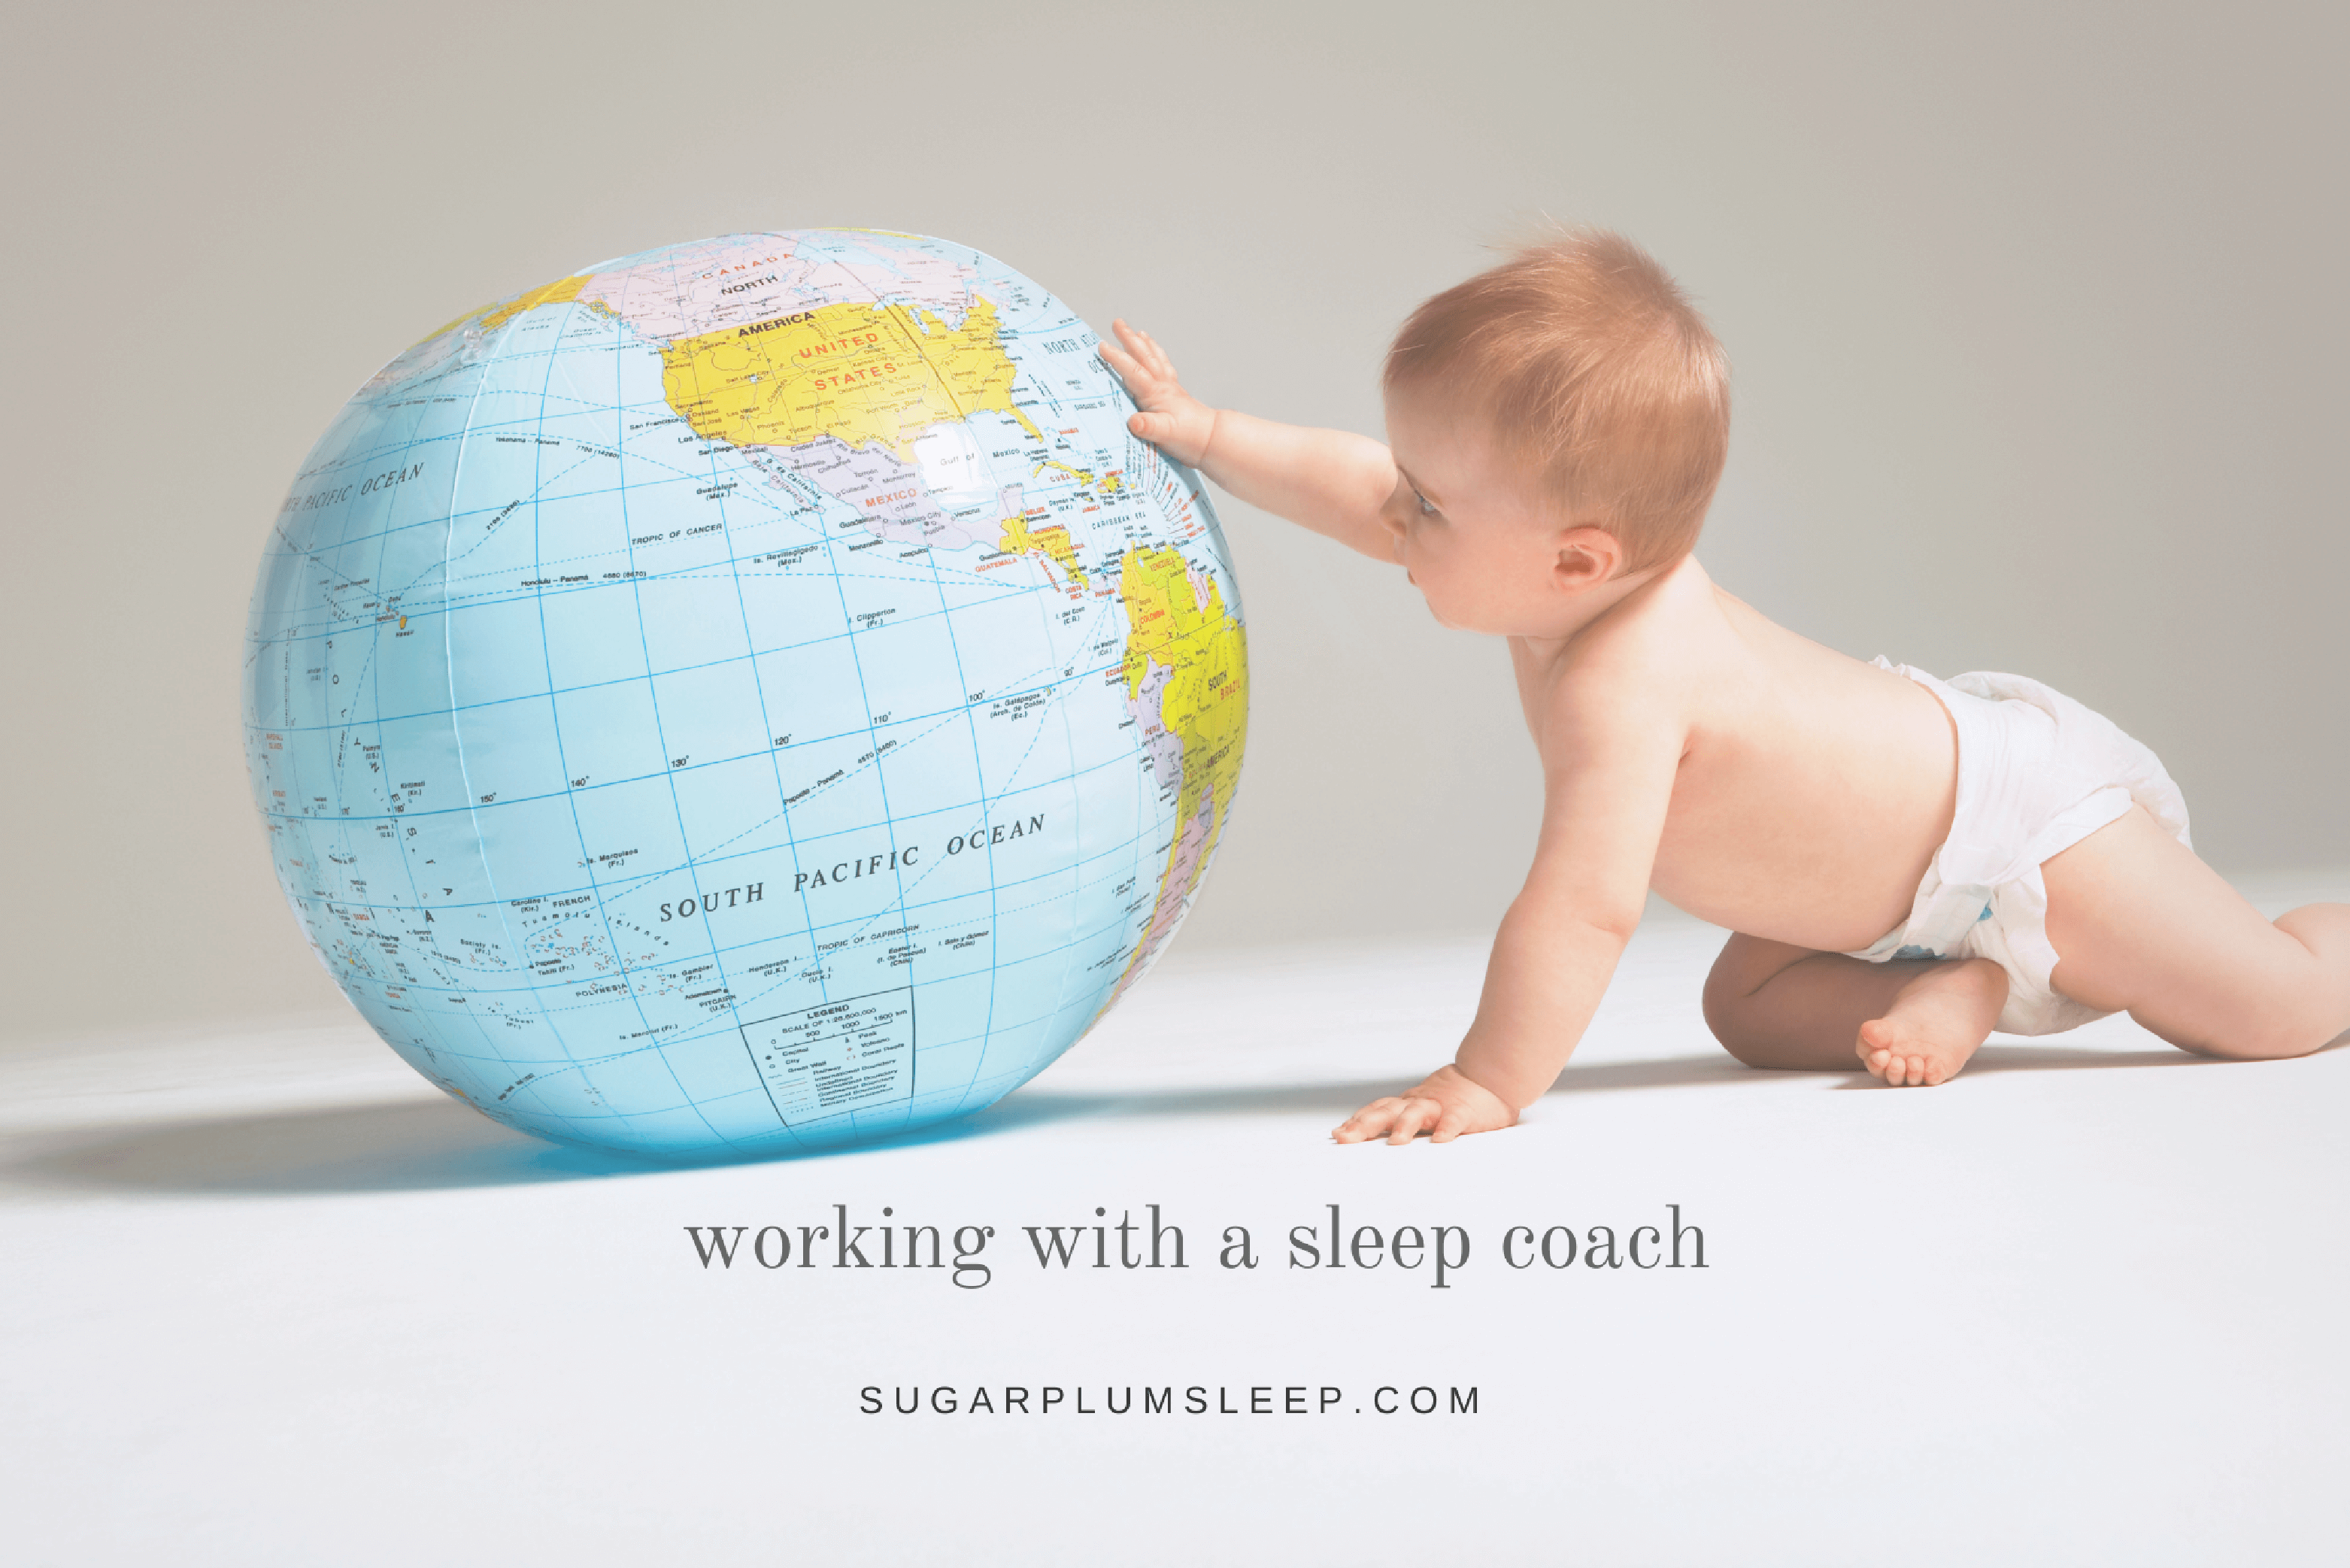 sleep coach